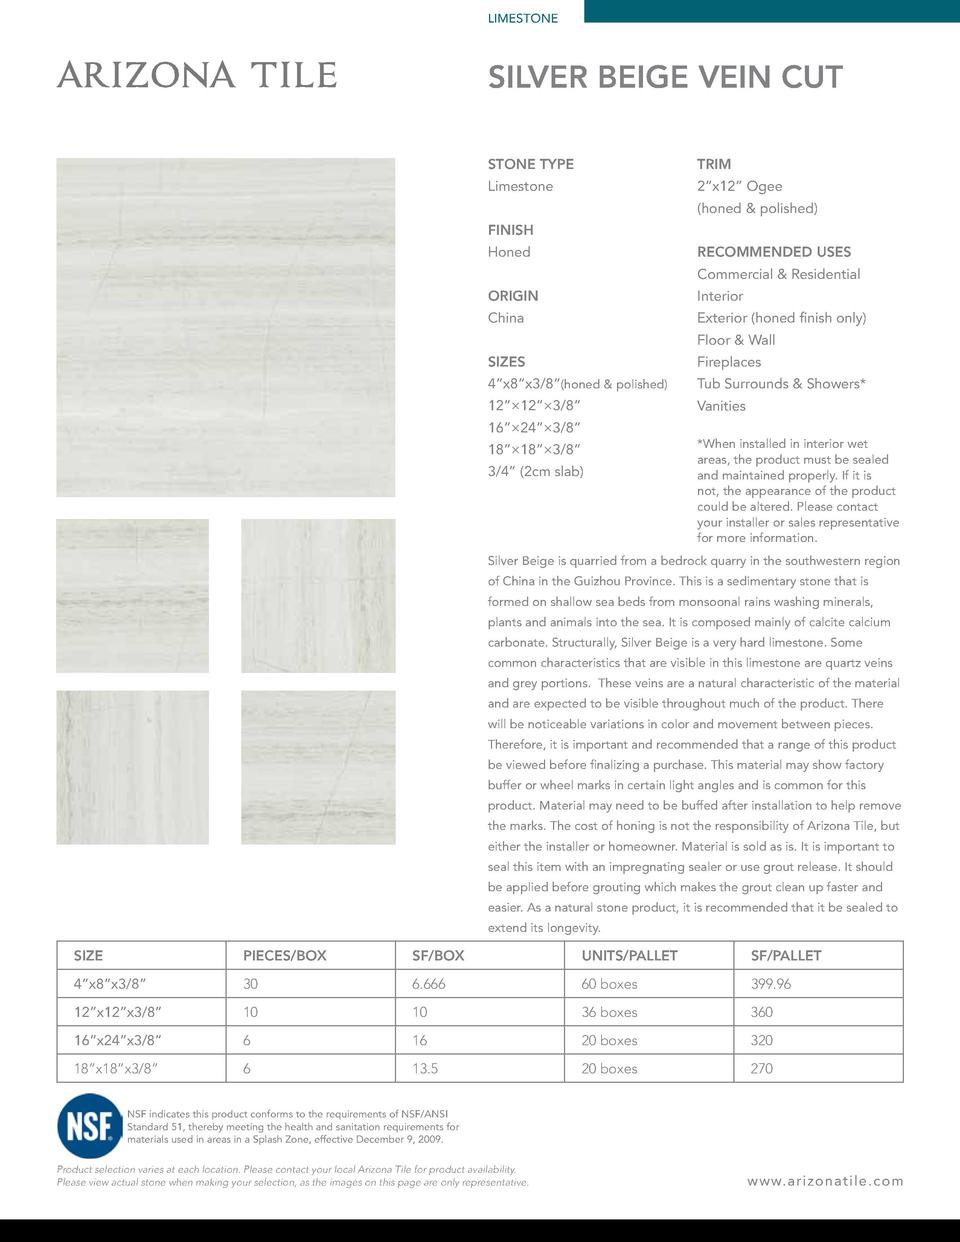 LIMESTONE  SILVER BEIGE VEIN CUT STONE TYPE  TRIM  Limestone  2   x12    Ogee  honed   polished   FINISH RECOMMENDED USES ...